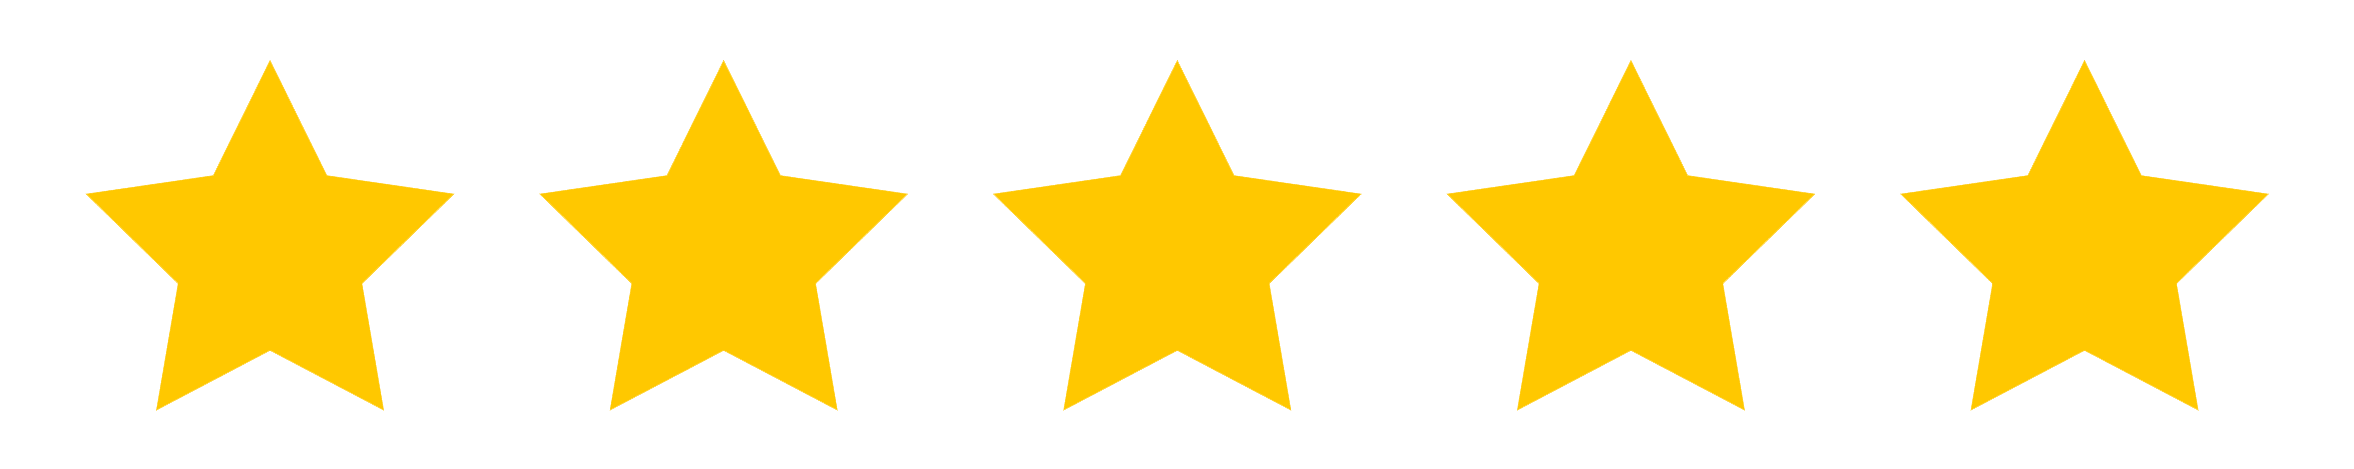 Reviews star rating from Diane C. for A-1 Self Storage in El Cajon, California